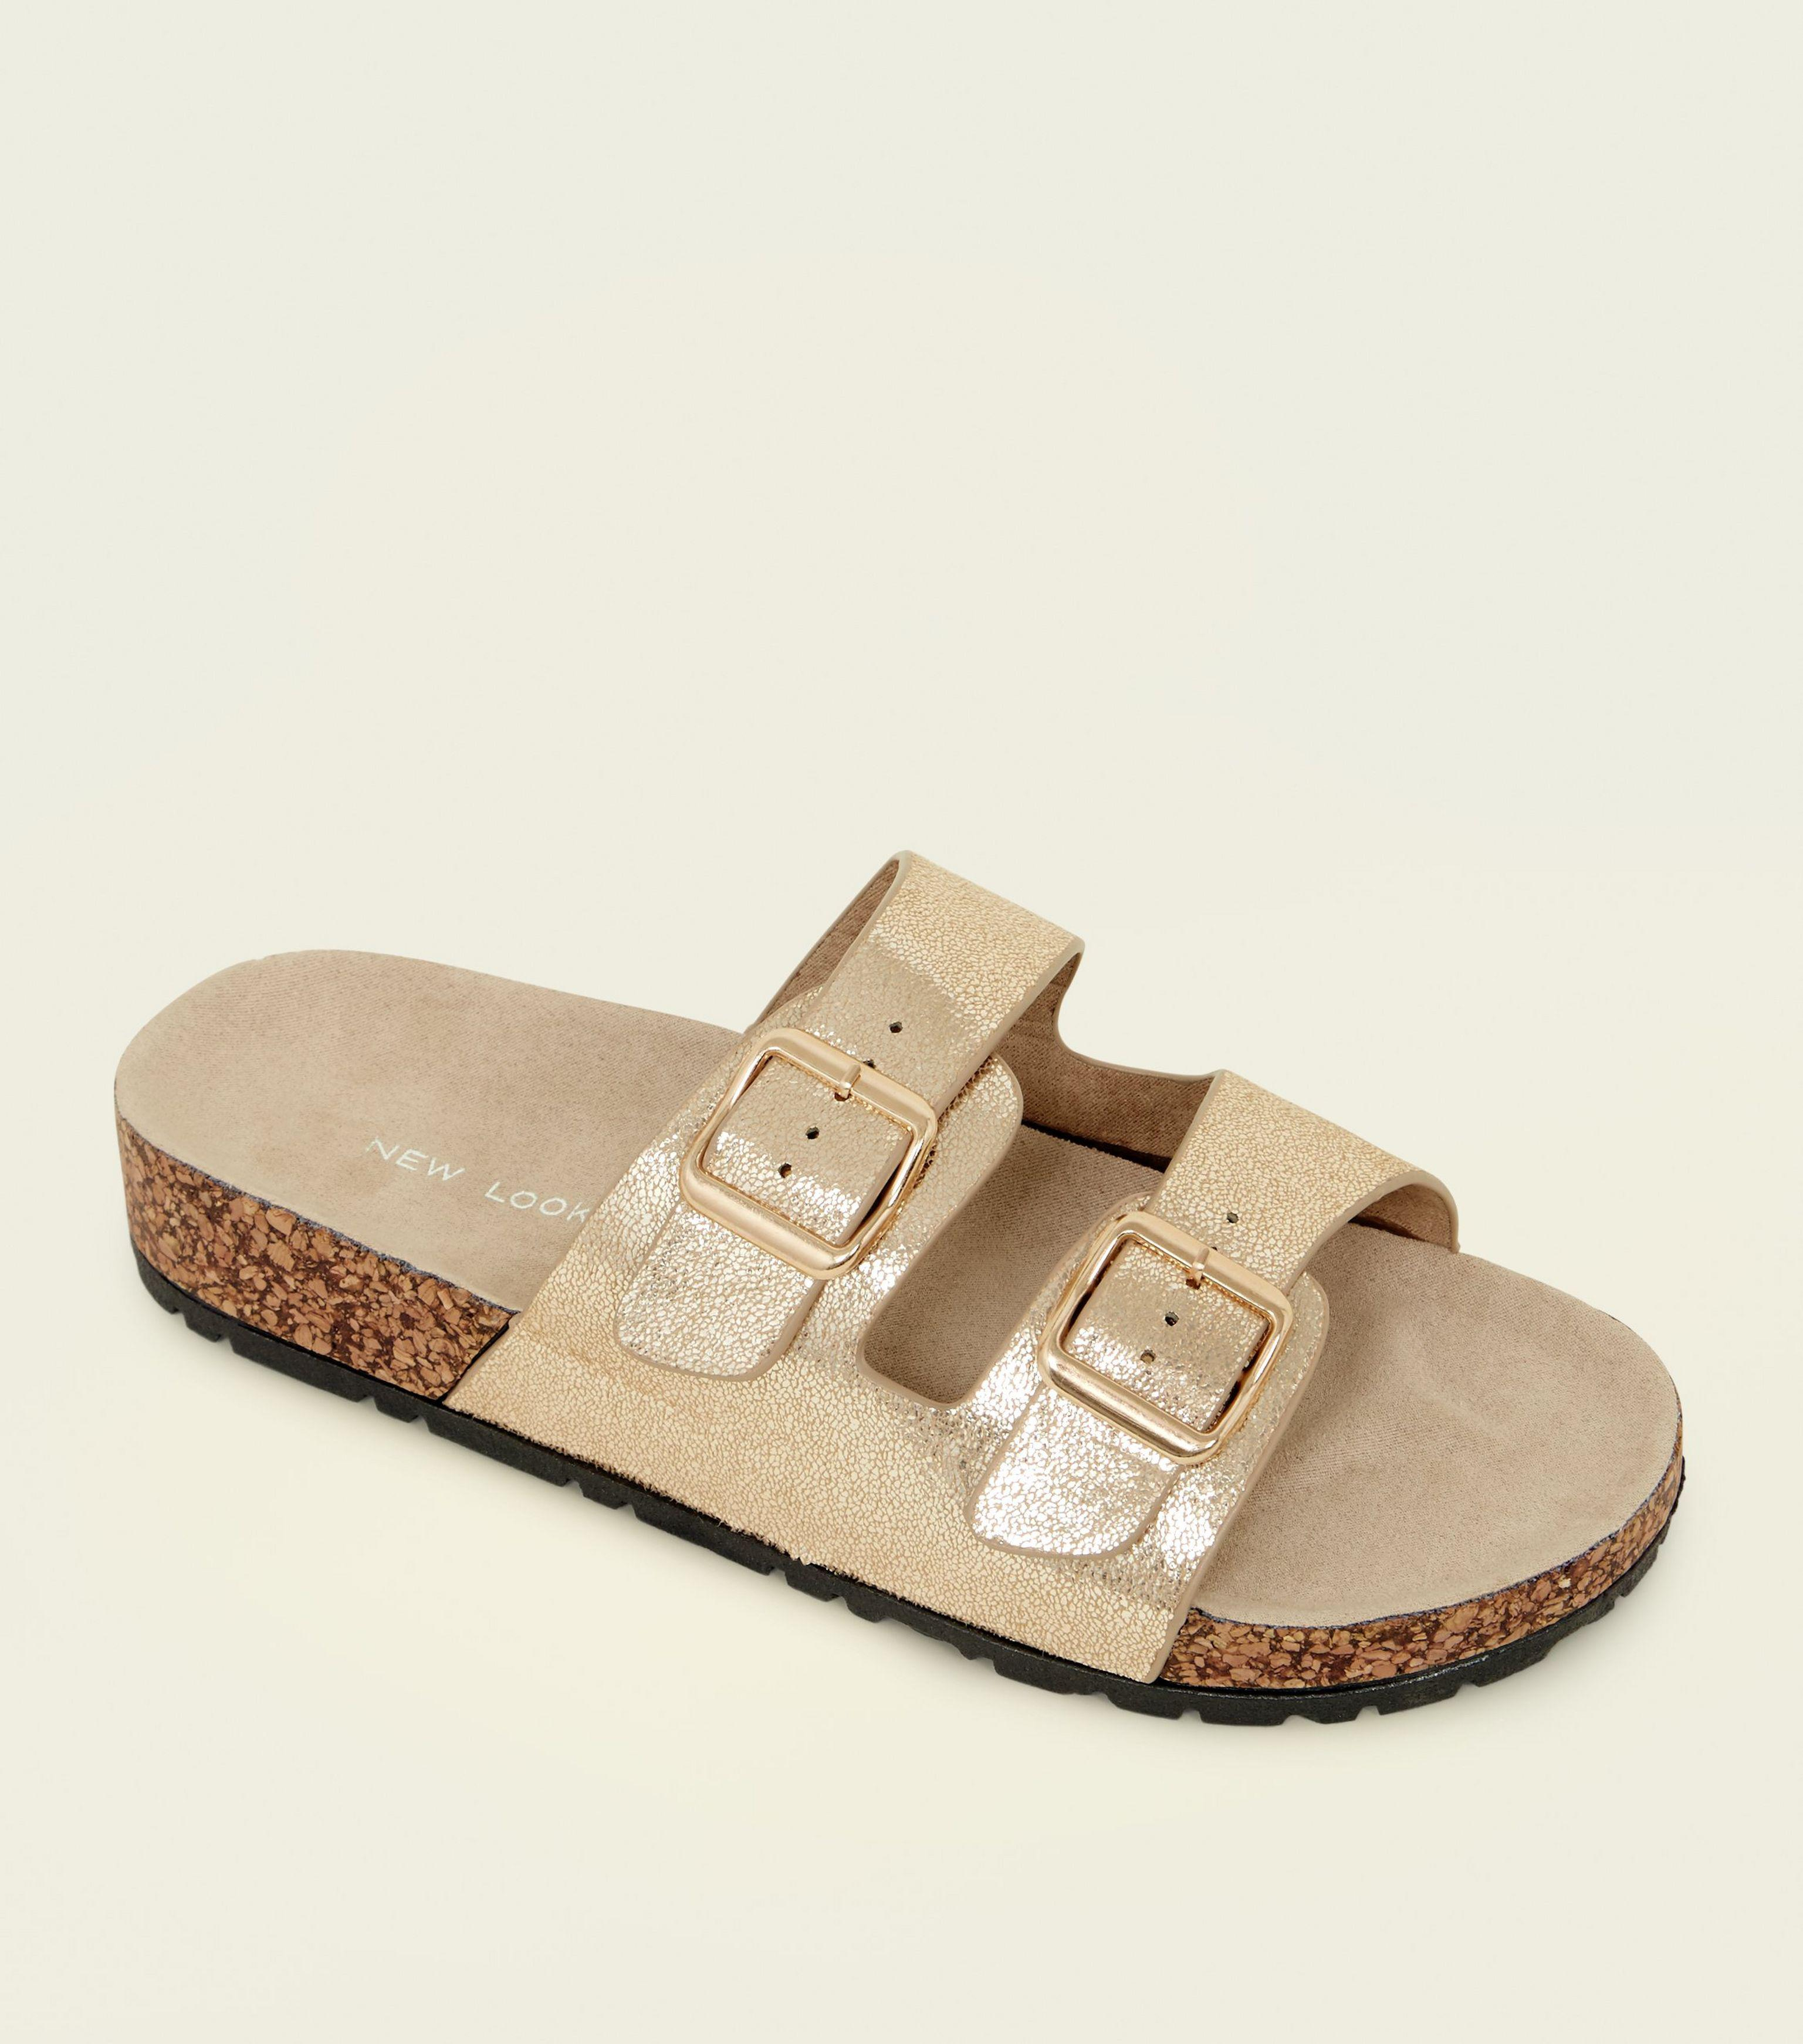 d6042ee6cdcc New Look Gold Double Buckle Strap Footbed Sandals in Metallic - Lyst